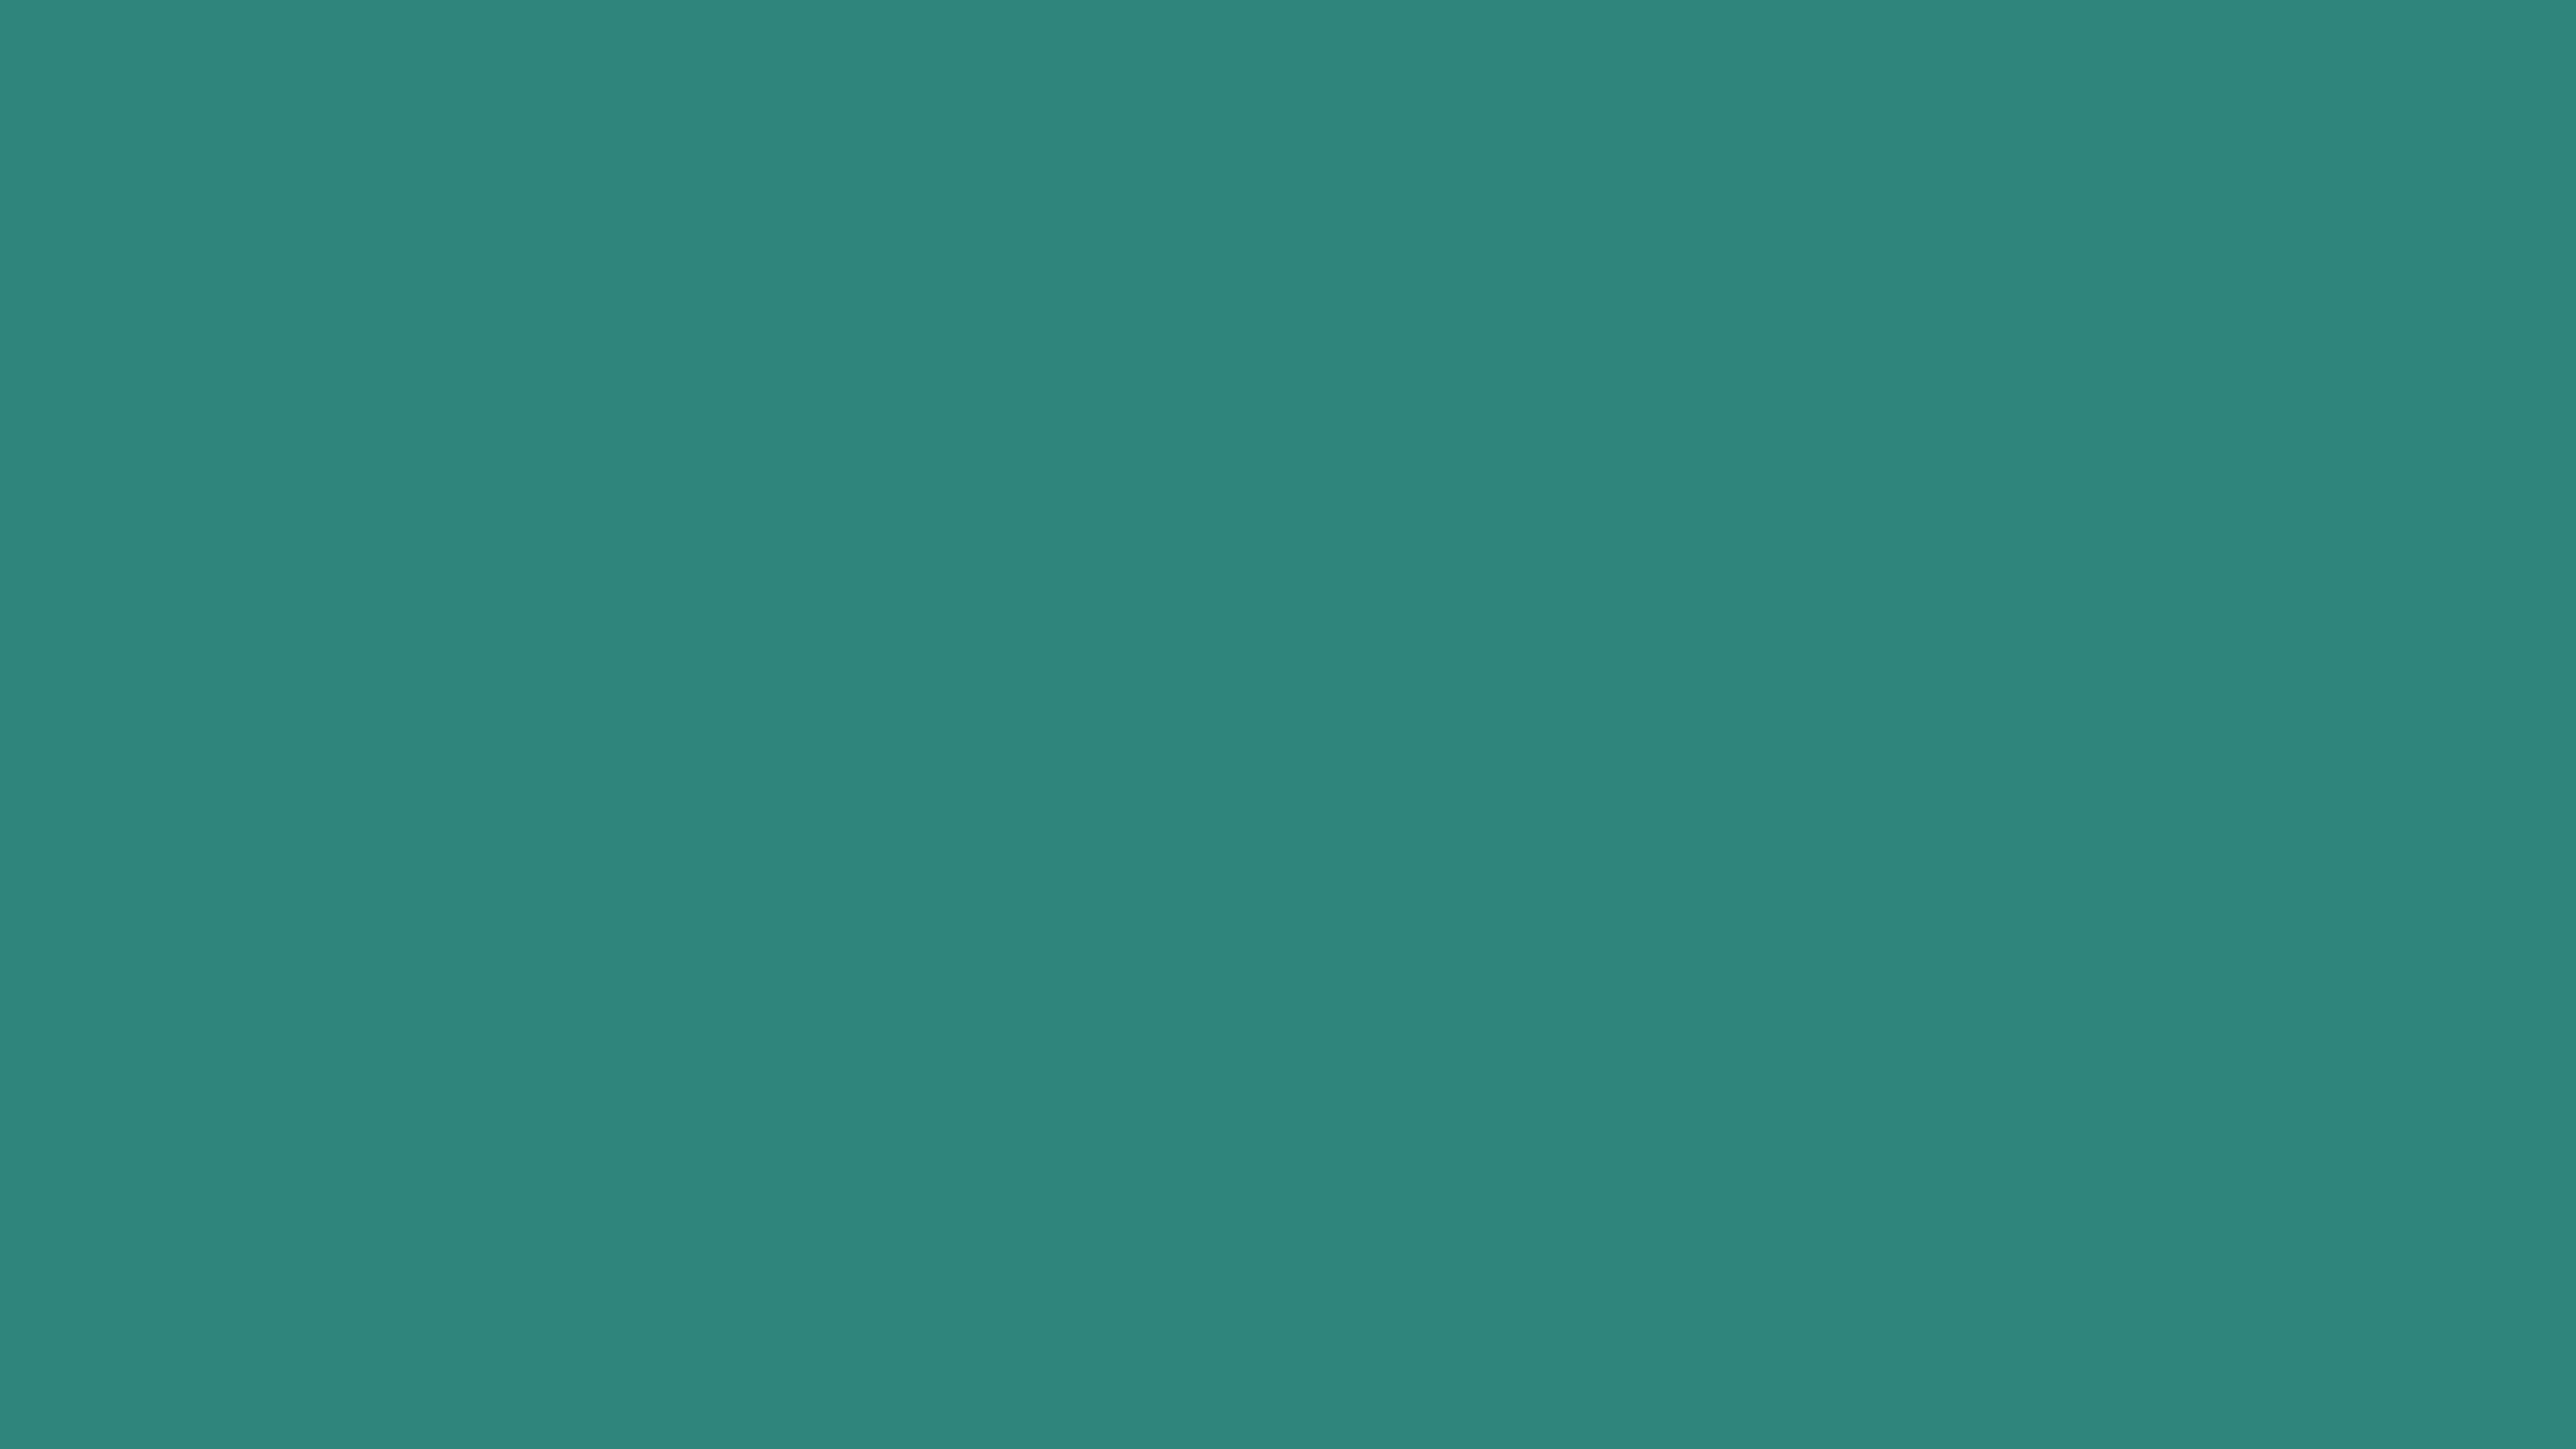 7680x4320 Celadon Green Solid Color Background